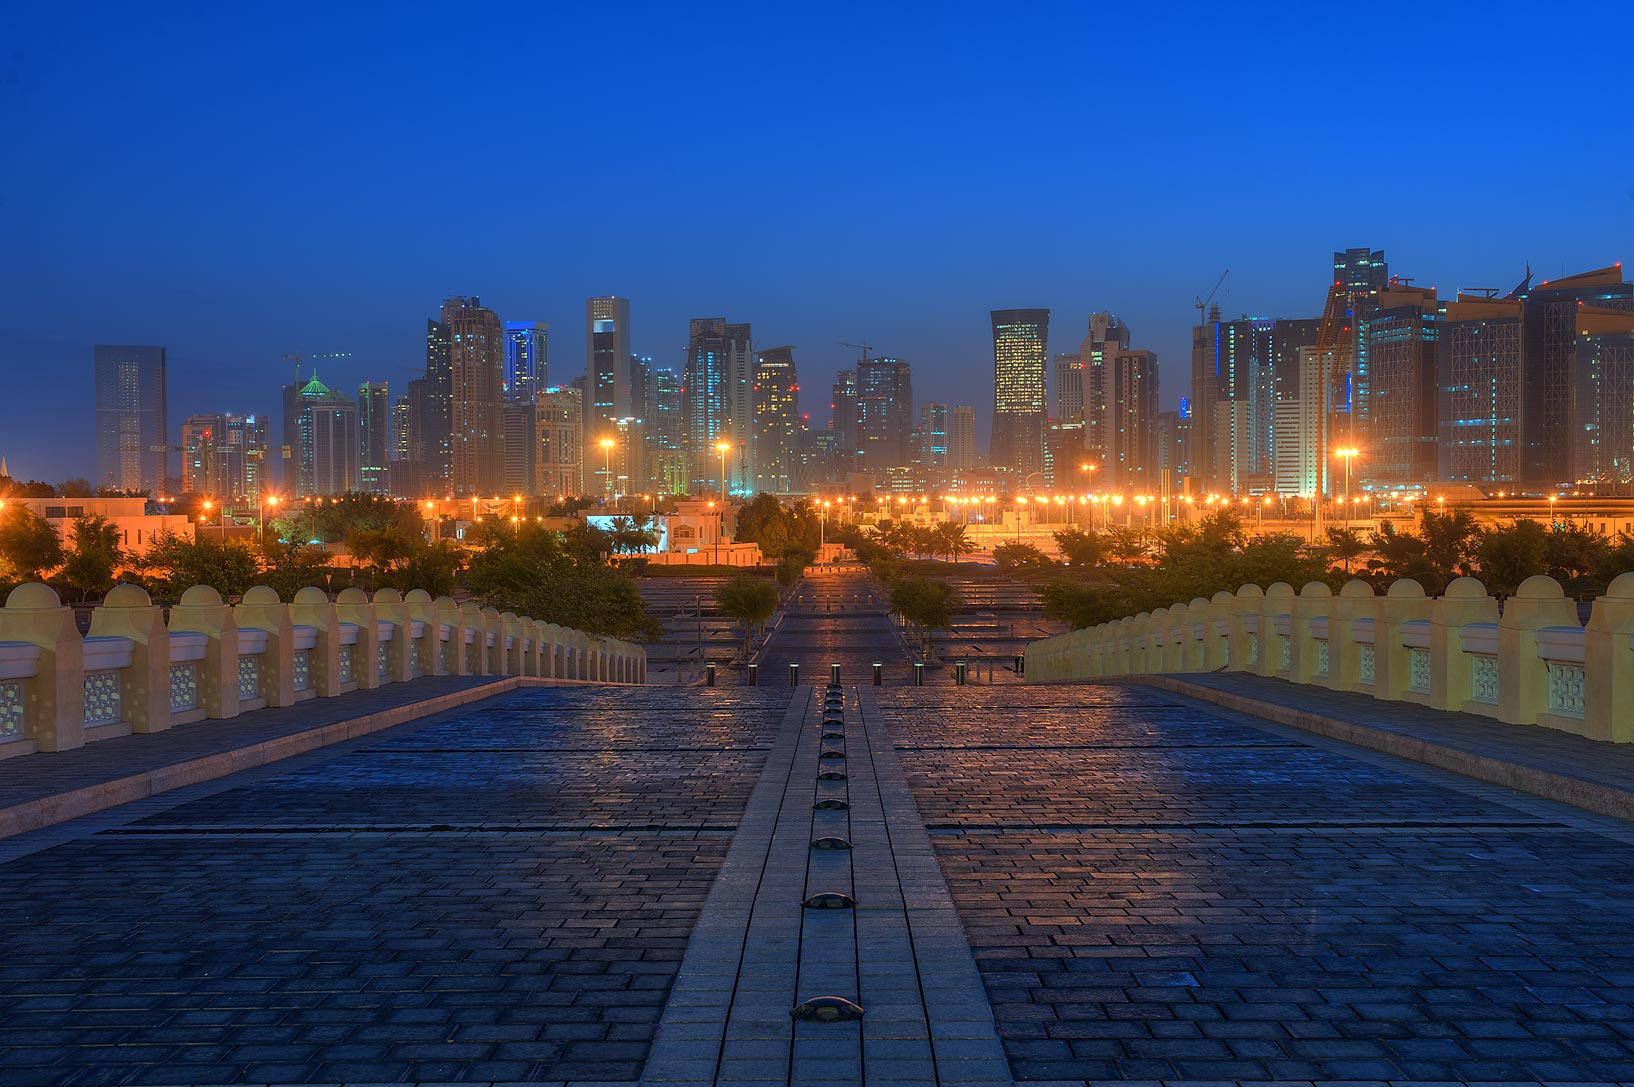 Entrance ramp of State Mosque (Sheikh Muhammad...Wahhab Mosque) at morning. Doha, Qatar